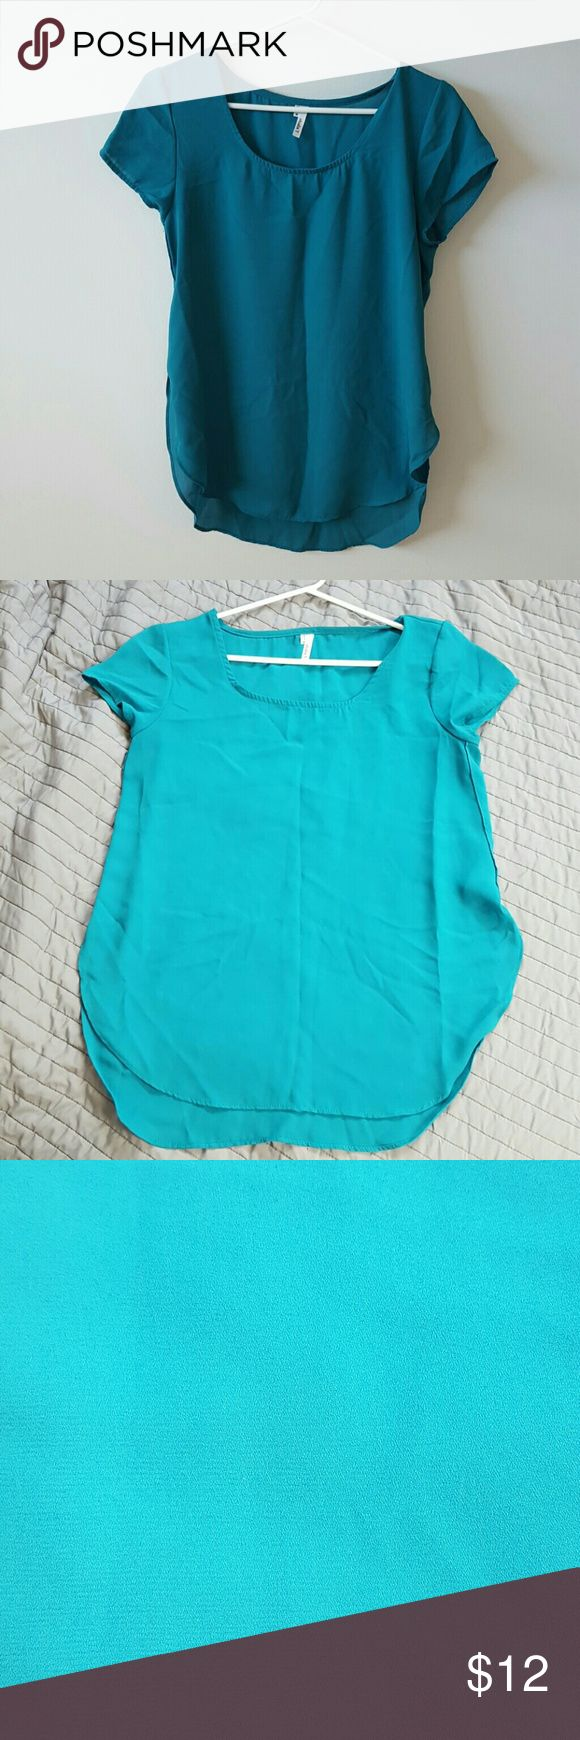 Teal blouse Light weight blouse, high slits at sides,cap sleeves, scoop neck, worn a few times Studio Y Tops Blouses